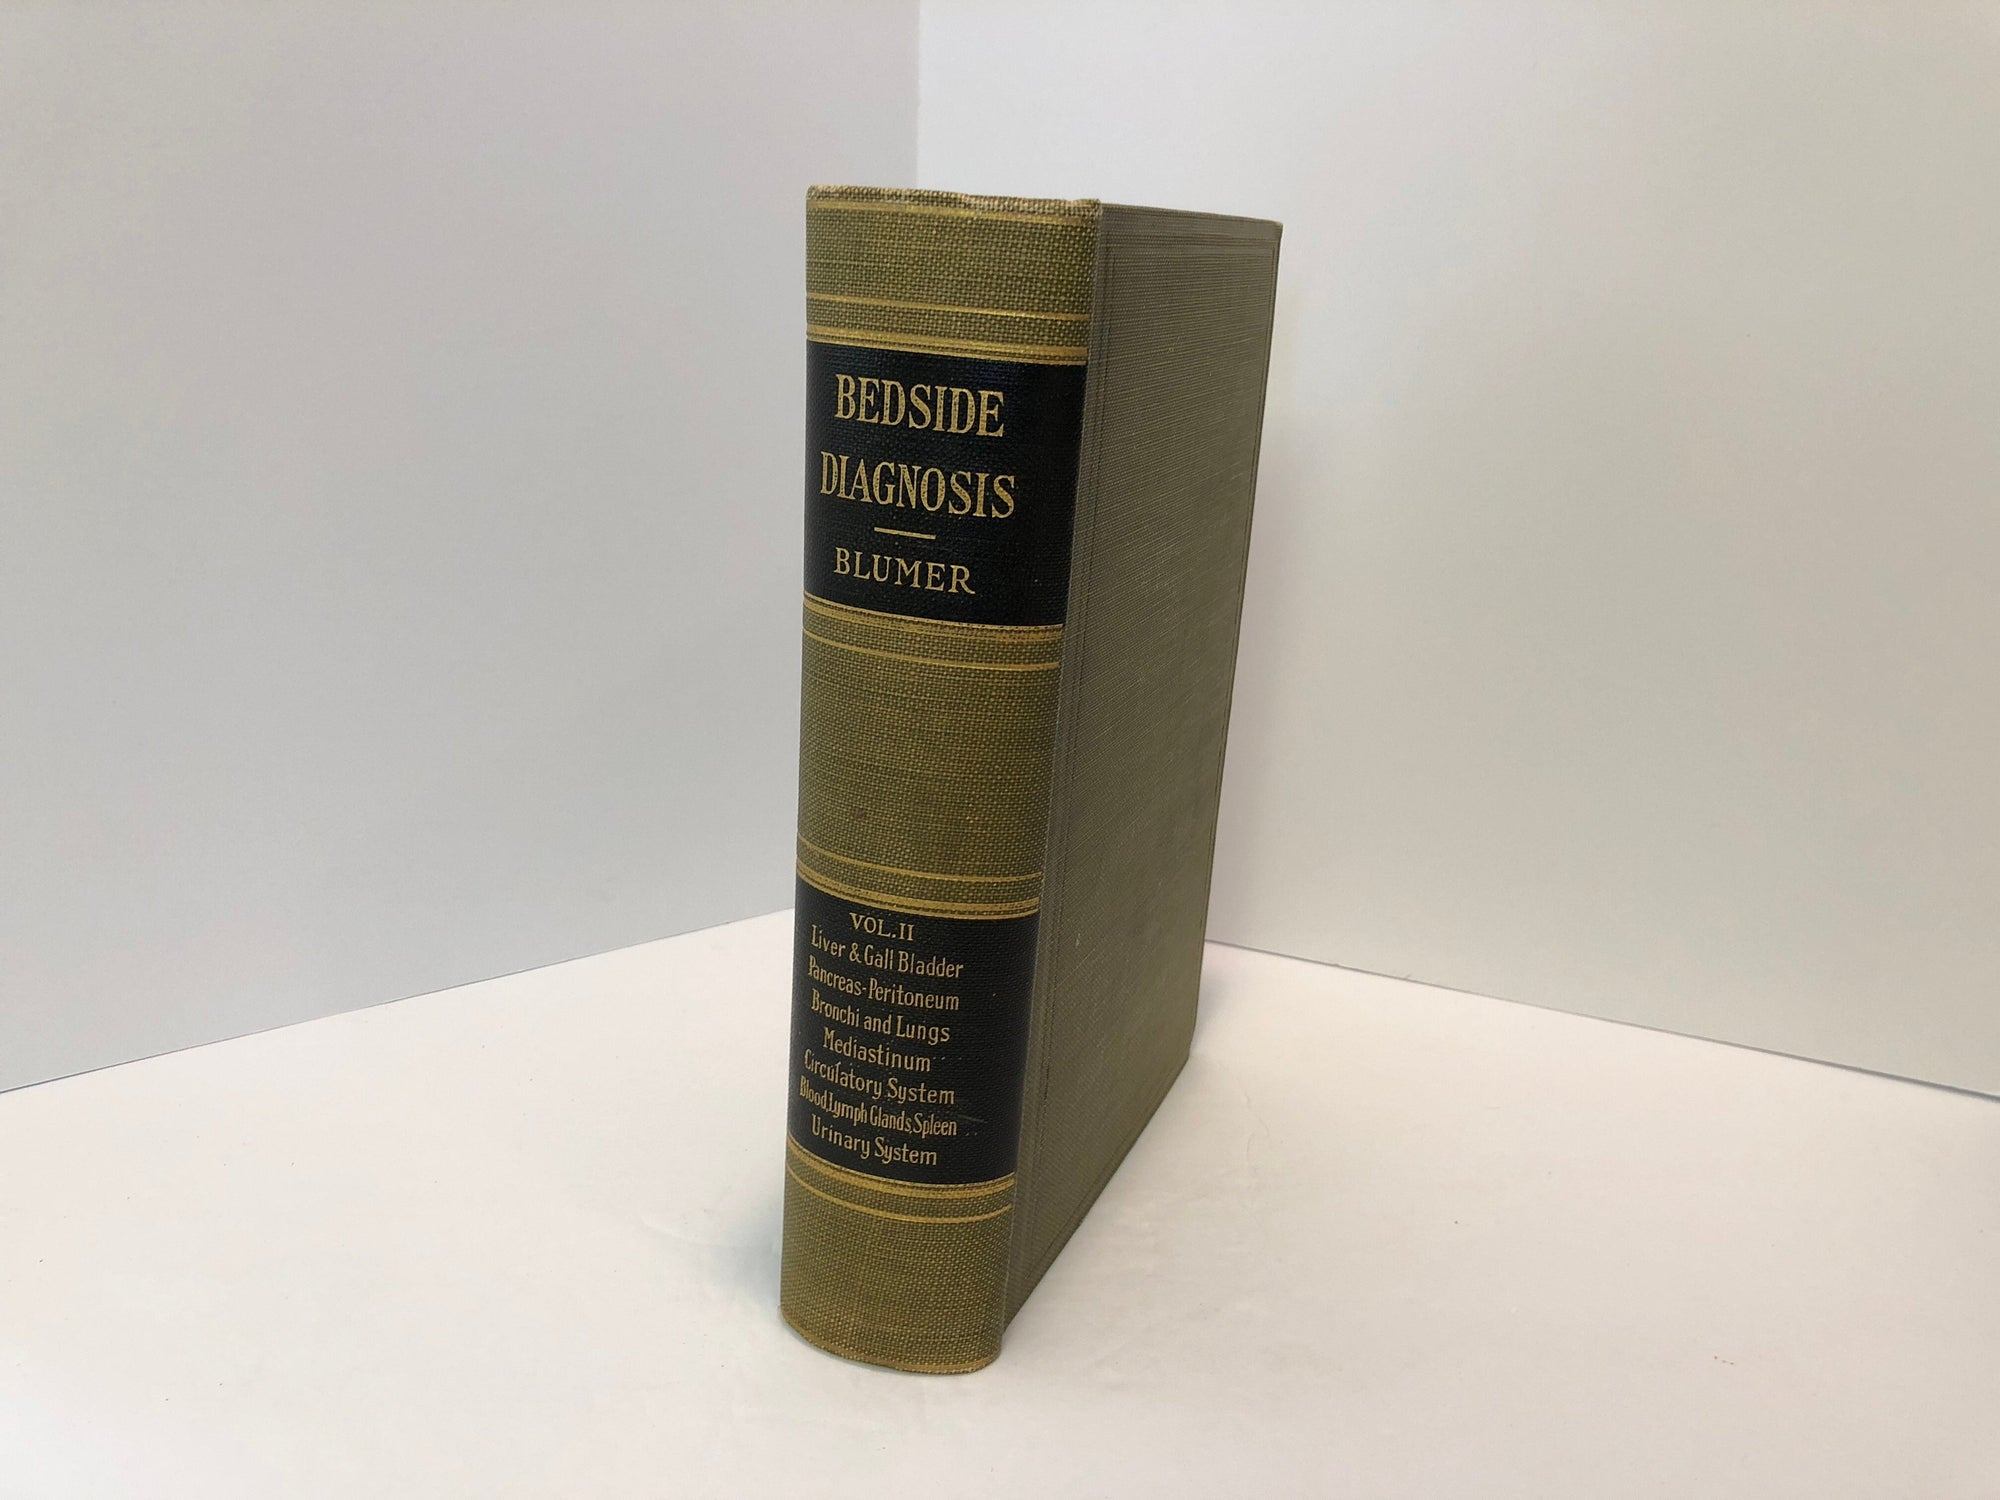 Bedside Diagnosis Volume 2 by American Authors Edited by G Blumer, MD 1928 Vintage Book